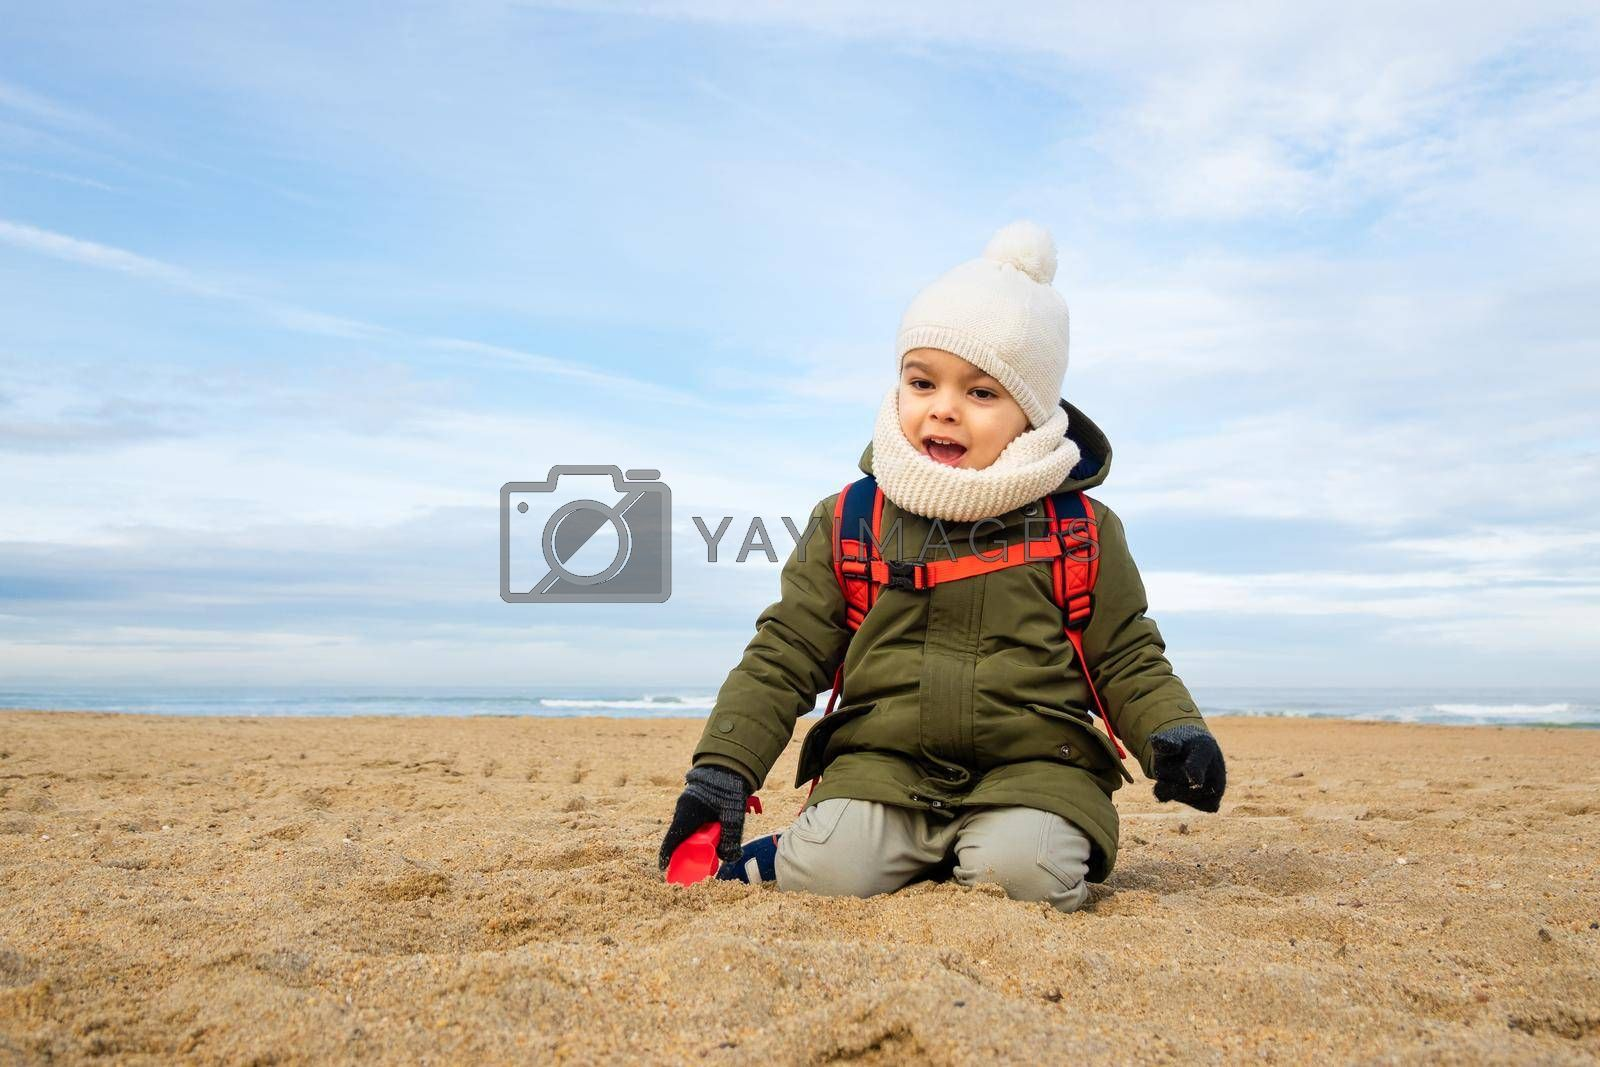 Little boy playing in the sand on beach in winter